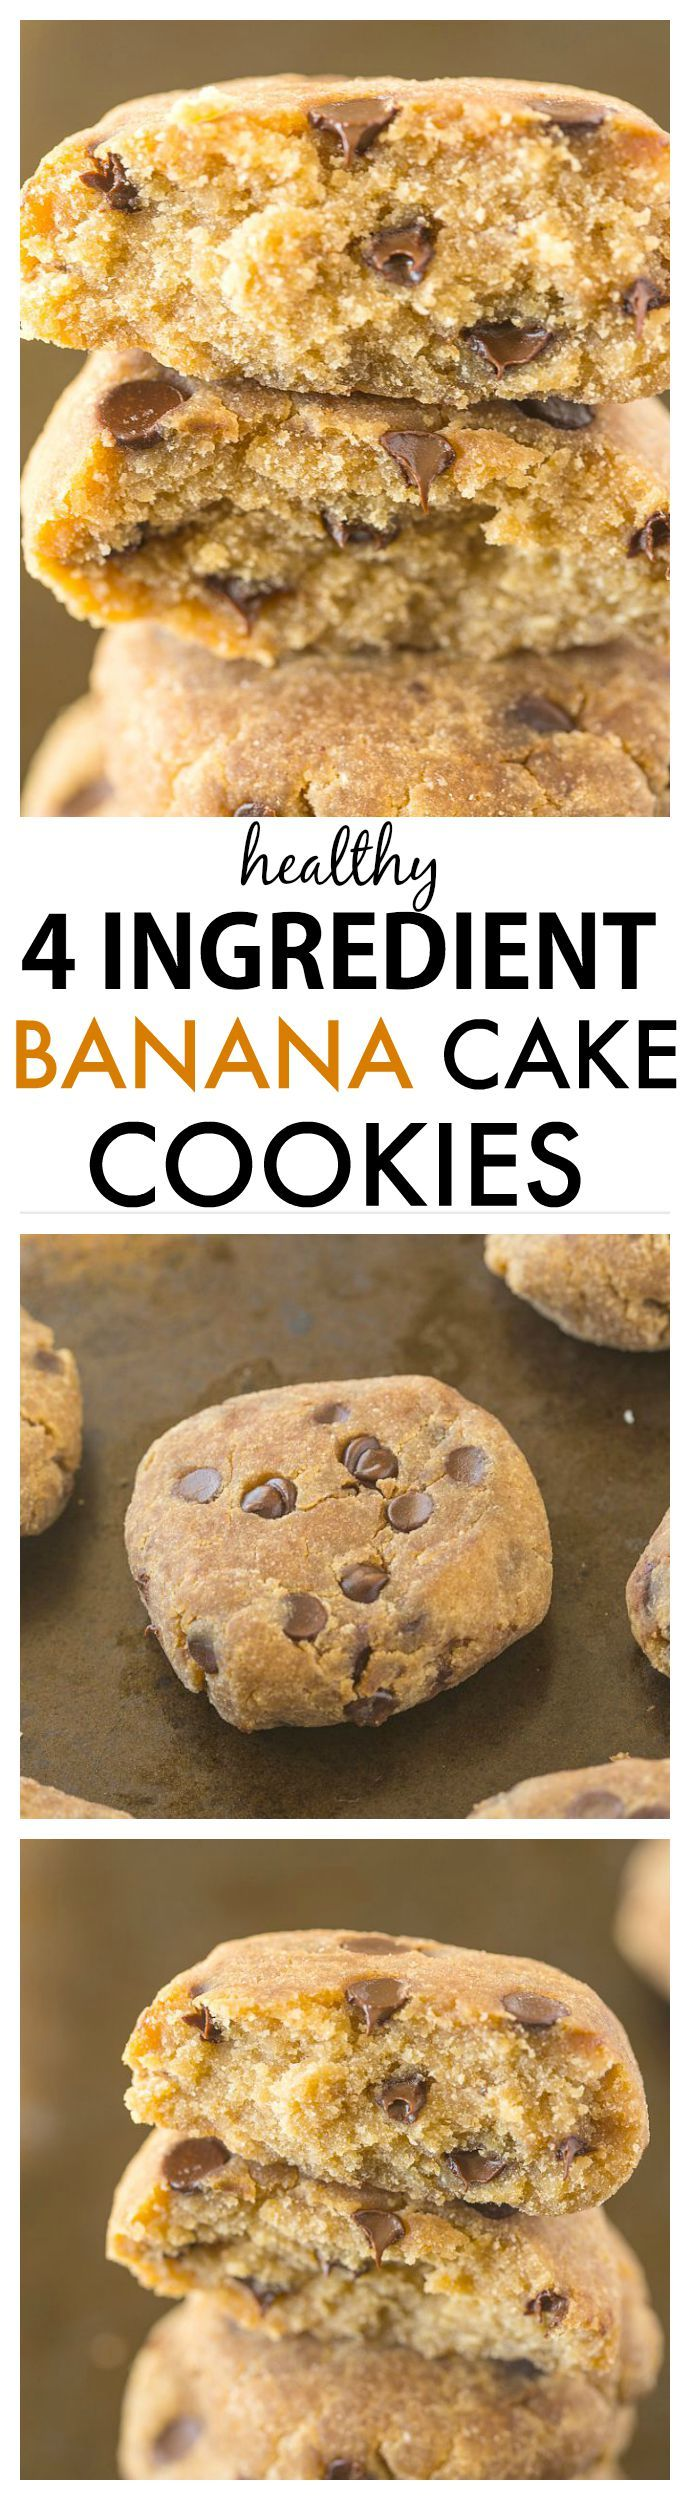 Healthy 4 Ingredient Banana Cake Cookies recipe- Quick and easy Cake-like cookies which need just four ingredients and 12 minutes- You won't believe this delicious recipe is SO healthy too! {paleo, vegan, gluten-free}- thebigmansworld.com